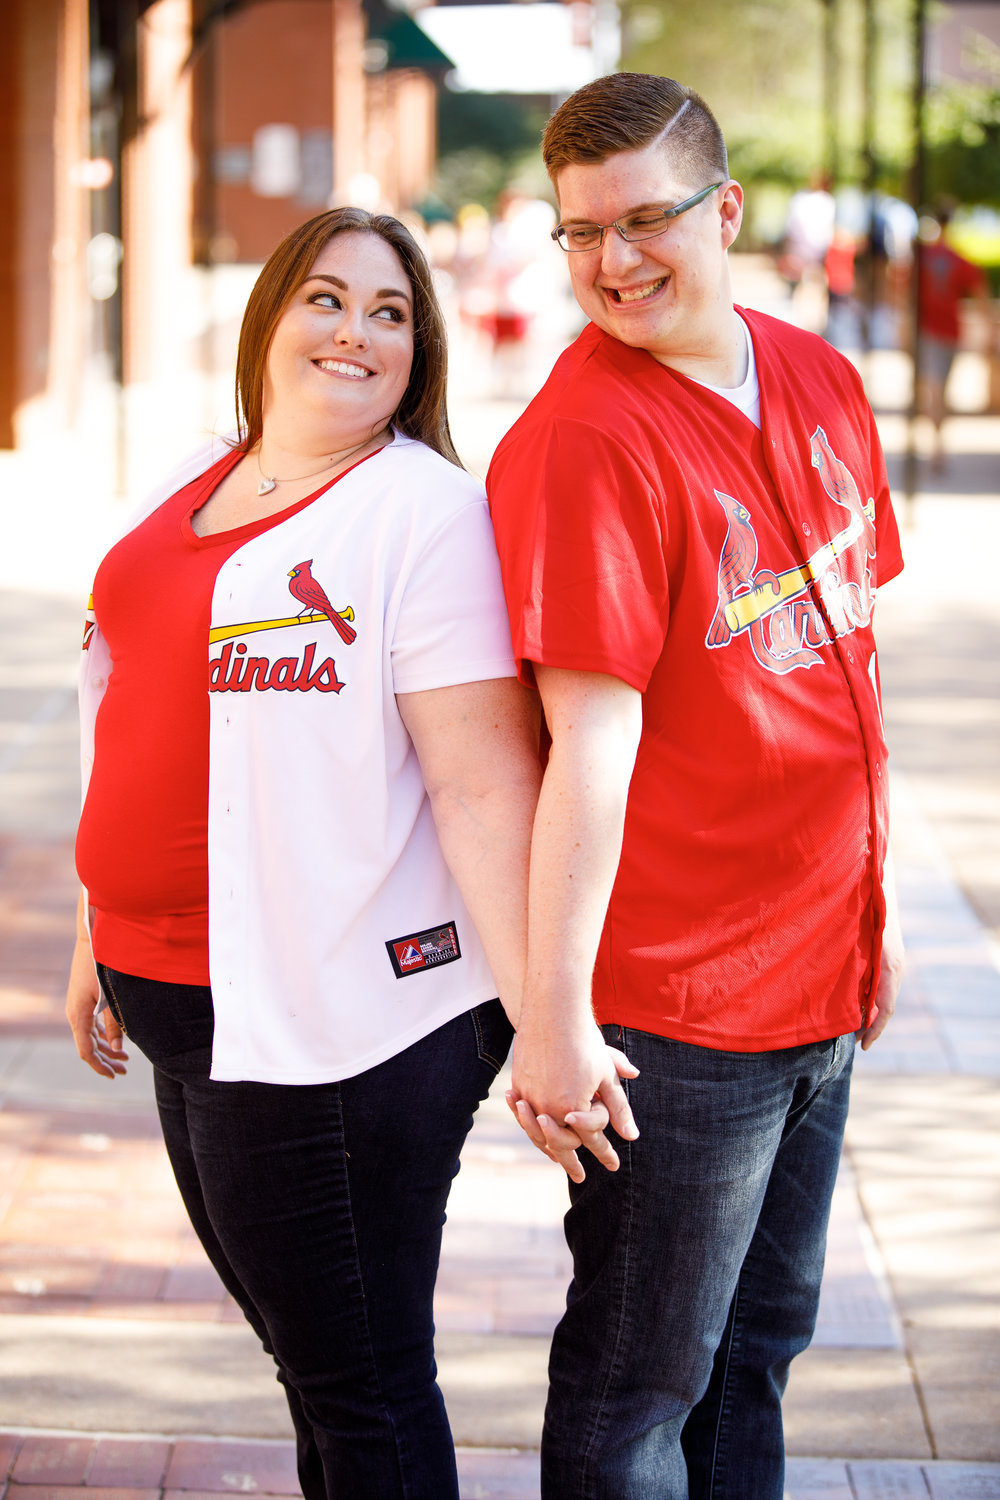 Busch Stadium and Forest Park Engagement Photos by St Louis Wedding Photographers and Videographers Oldani Photography 2.jpg